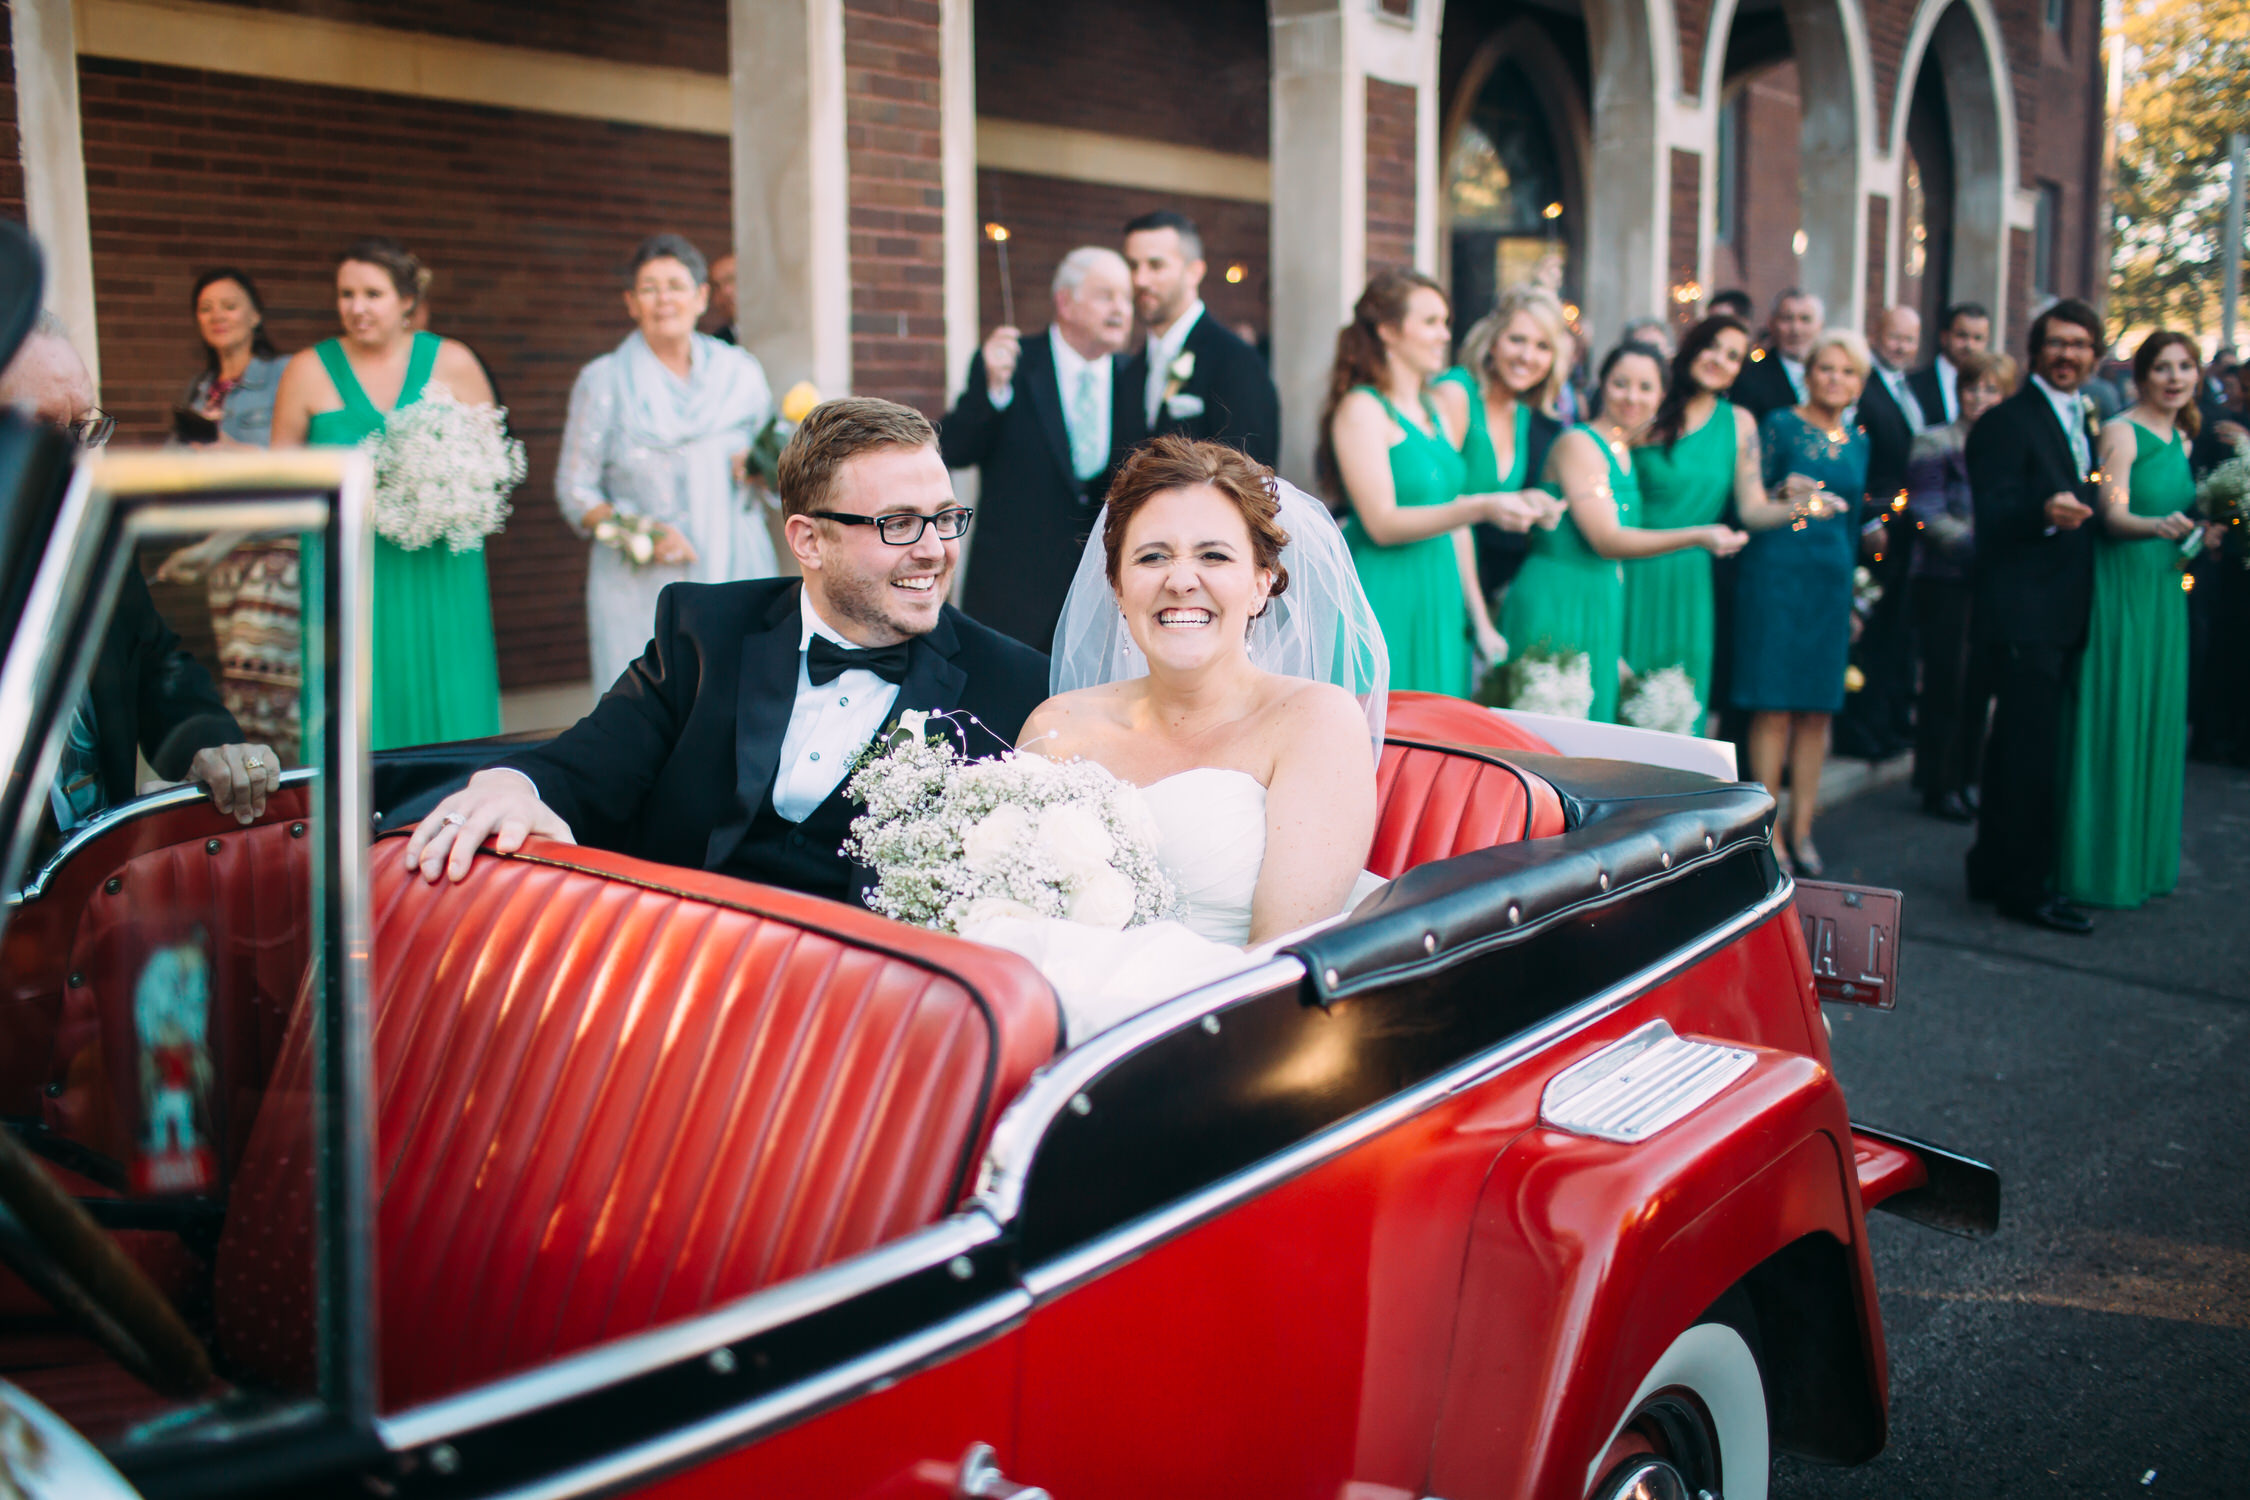 Wedding exit photo, Wedding getaway car, St Louis Wedding photographer